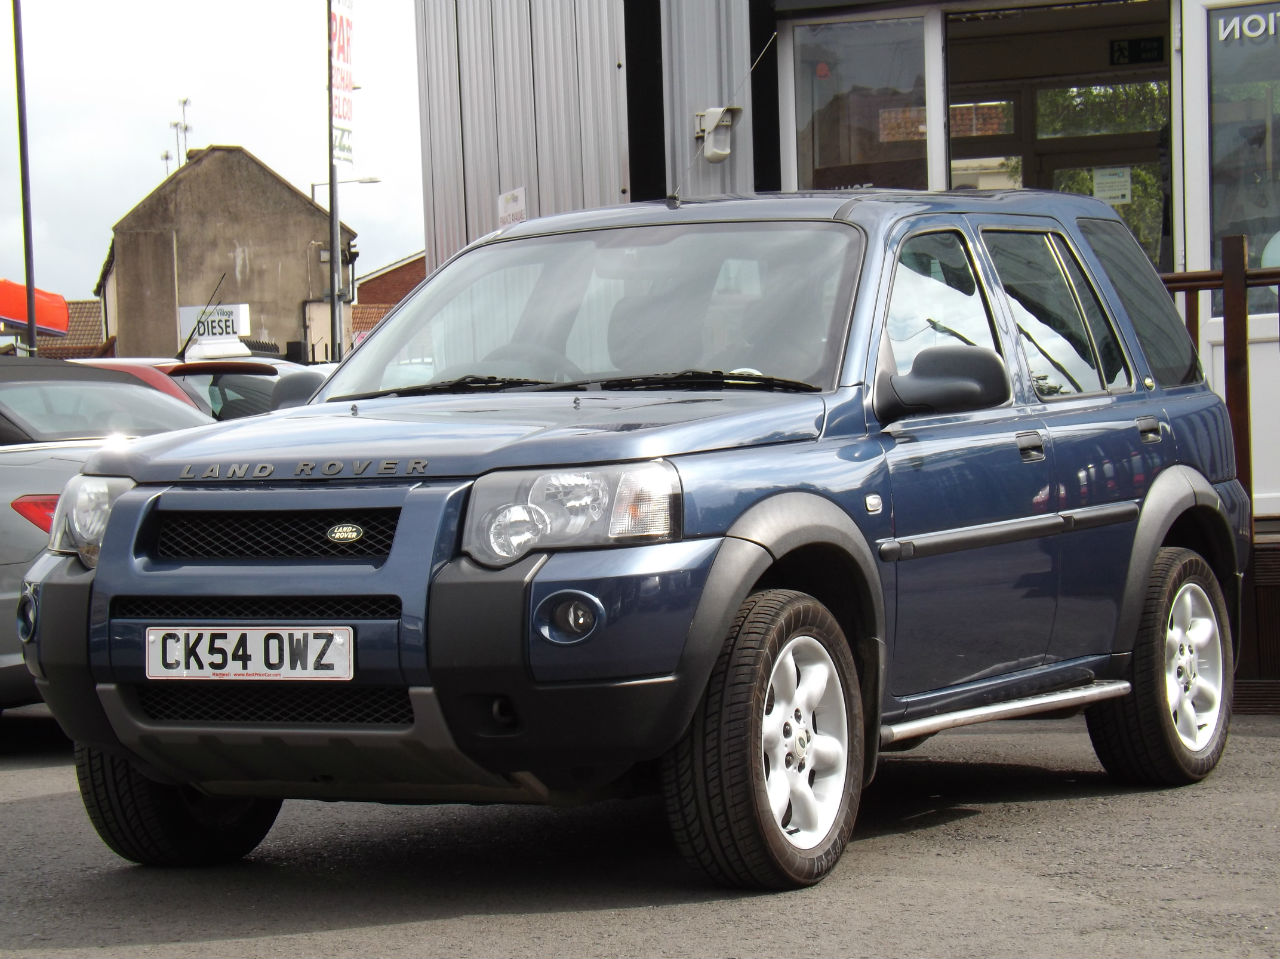 LAND ROVER FREELANDER 1.8 black